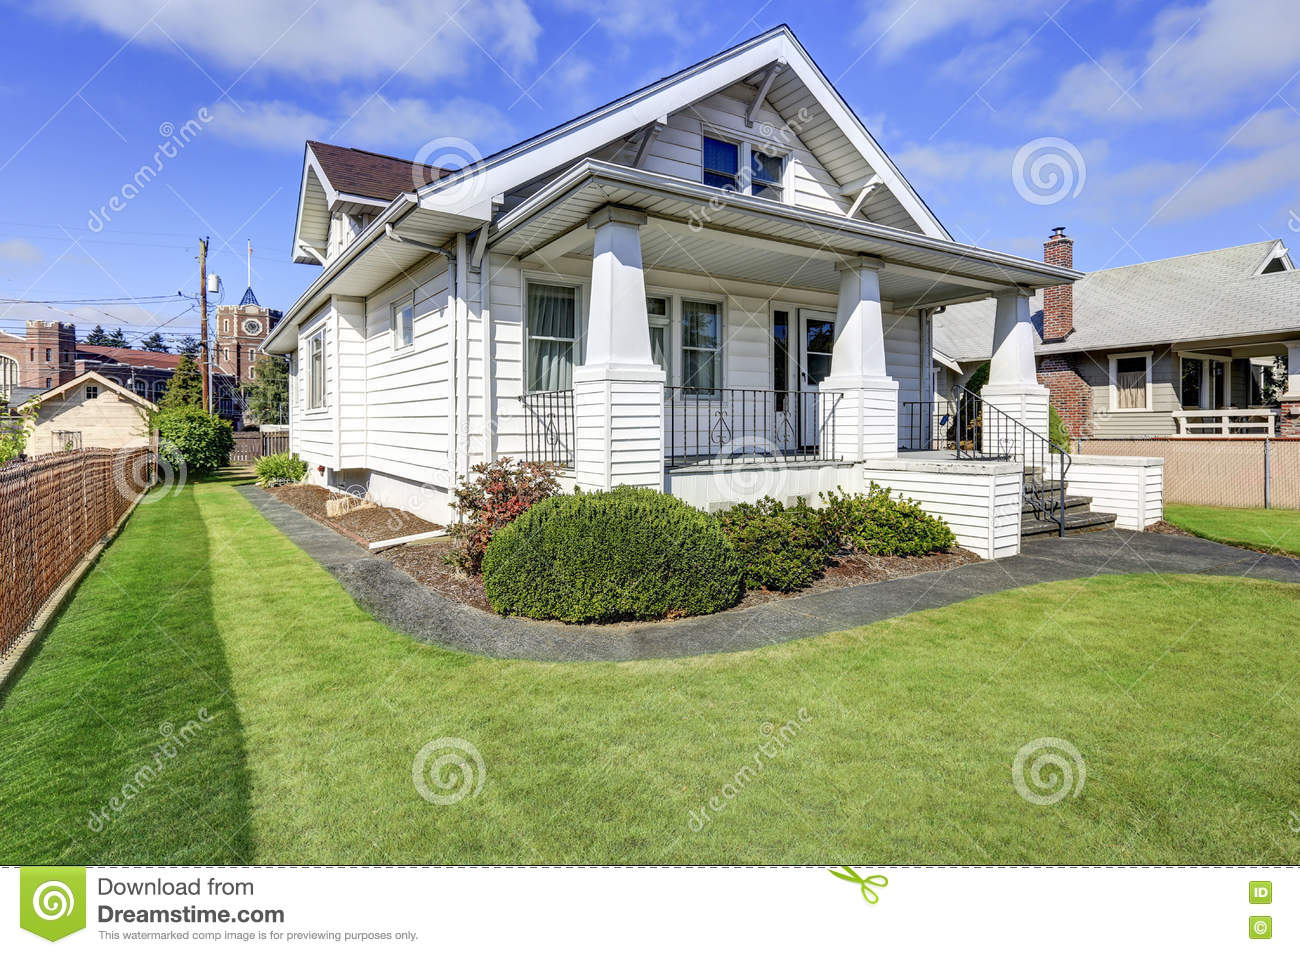 Covered front porch craftsman style home royalty free stock image - Royalty Free Stock Photo American Craftsman House Northwest Style White Estate Front